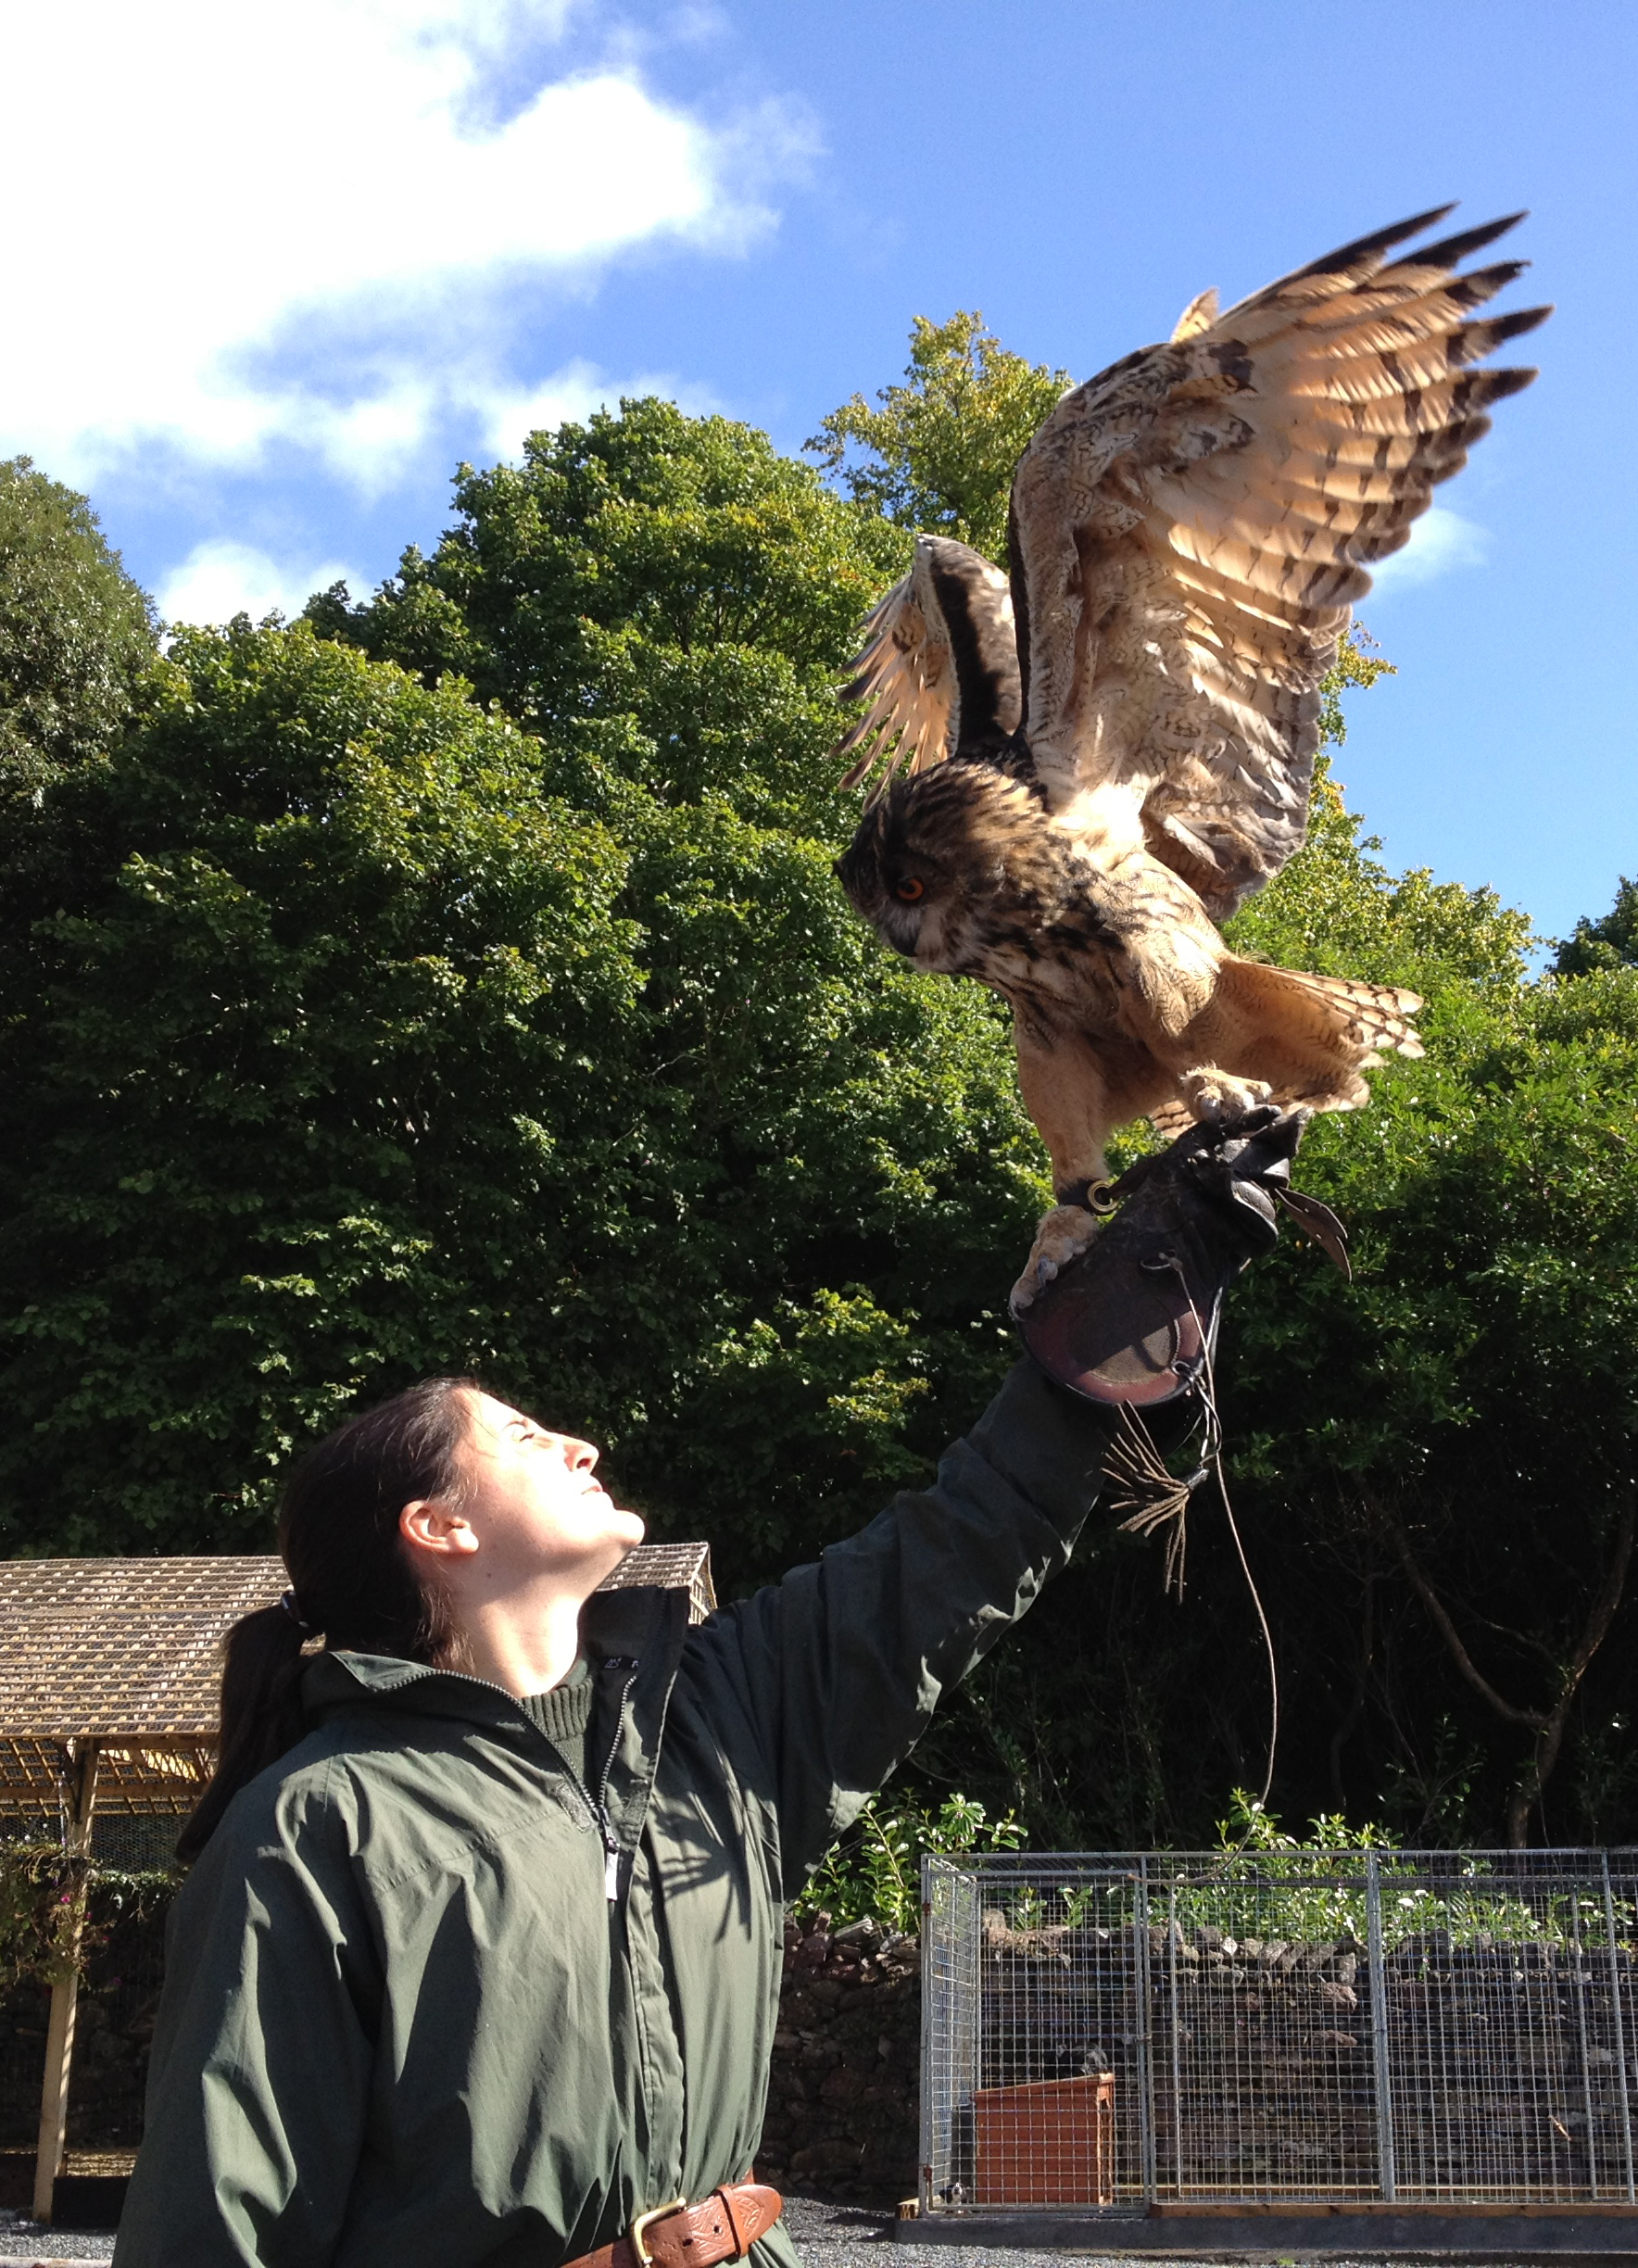 Eagle owl lands on a woman's gloved hand at a falcony demo at Ashford castle, part of the Essential Ireland Castles & Classics Tours